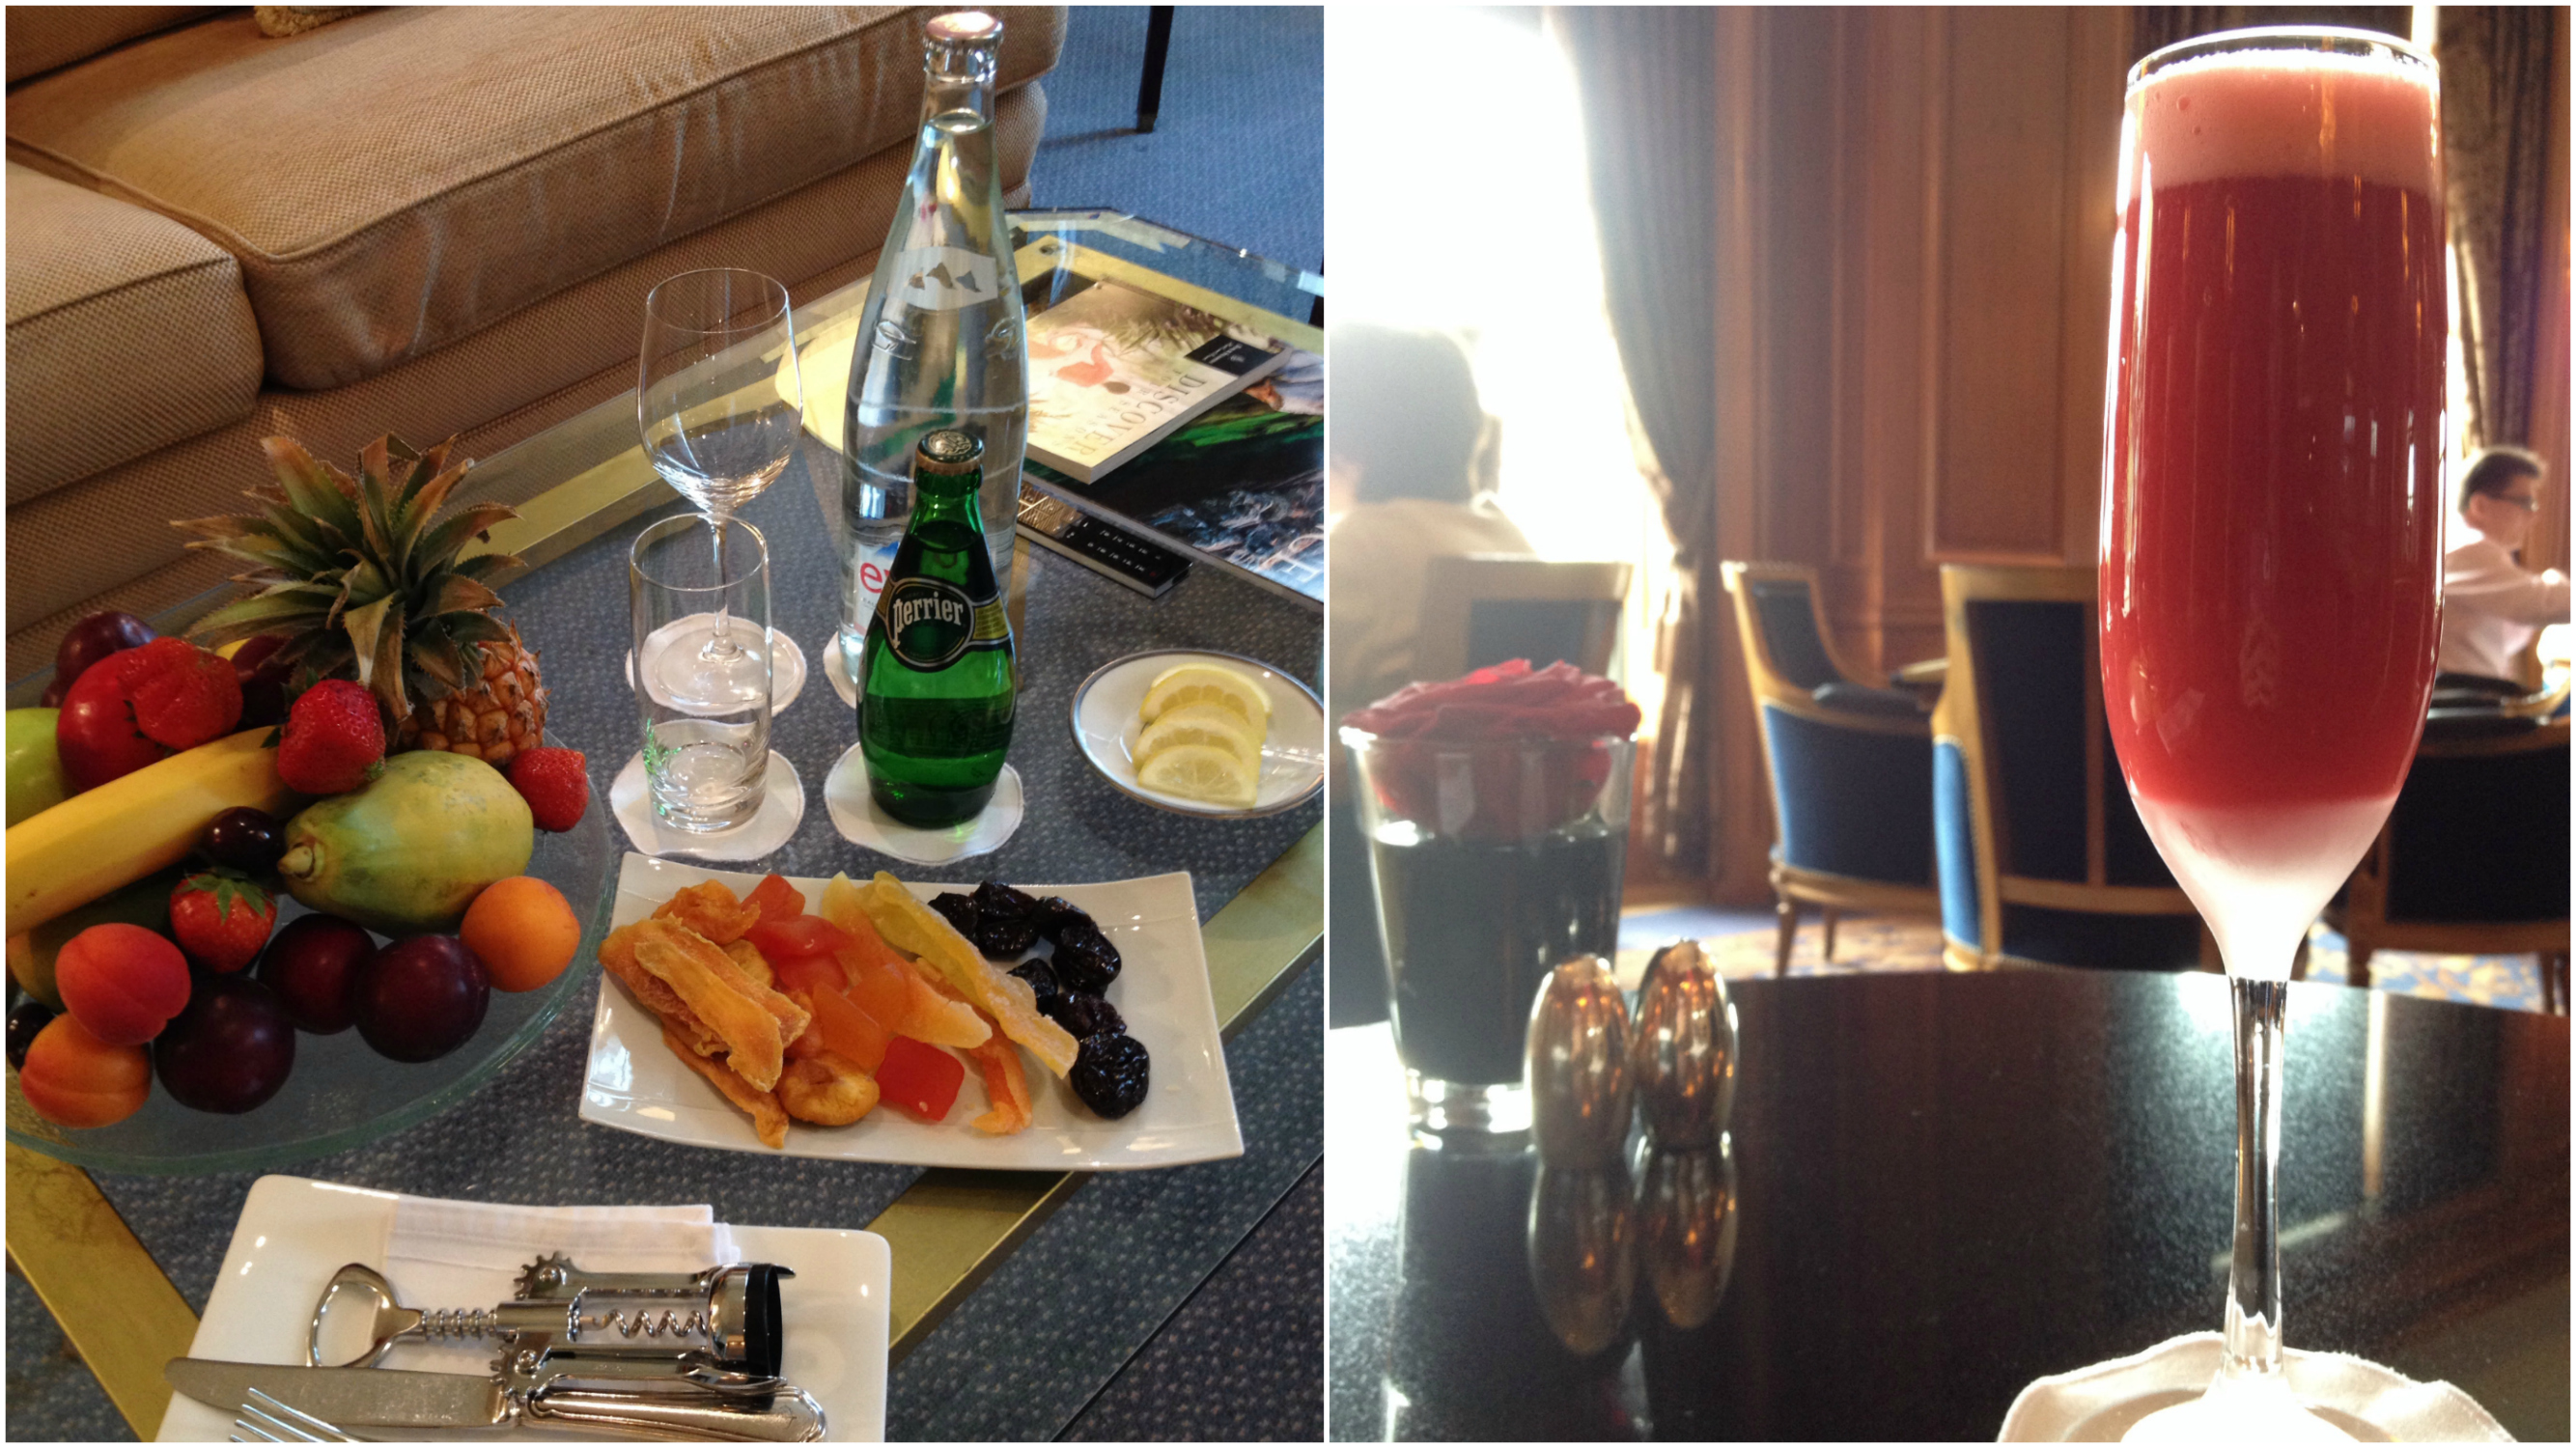 A treat in the suite and a light cocktail in the lounge!